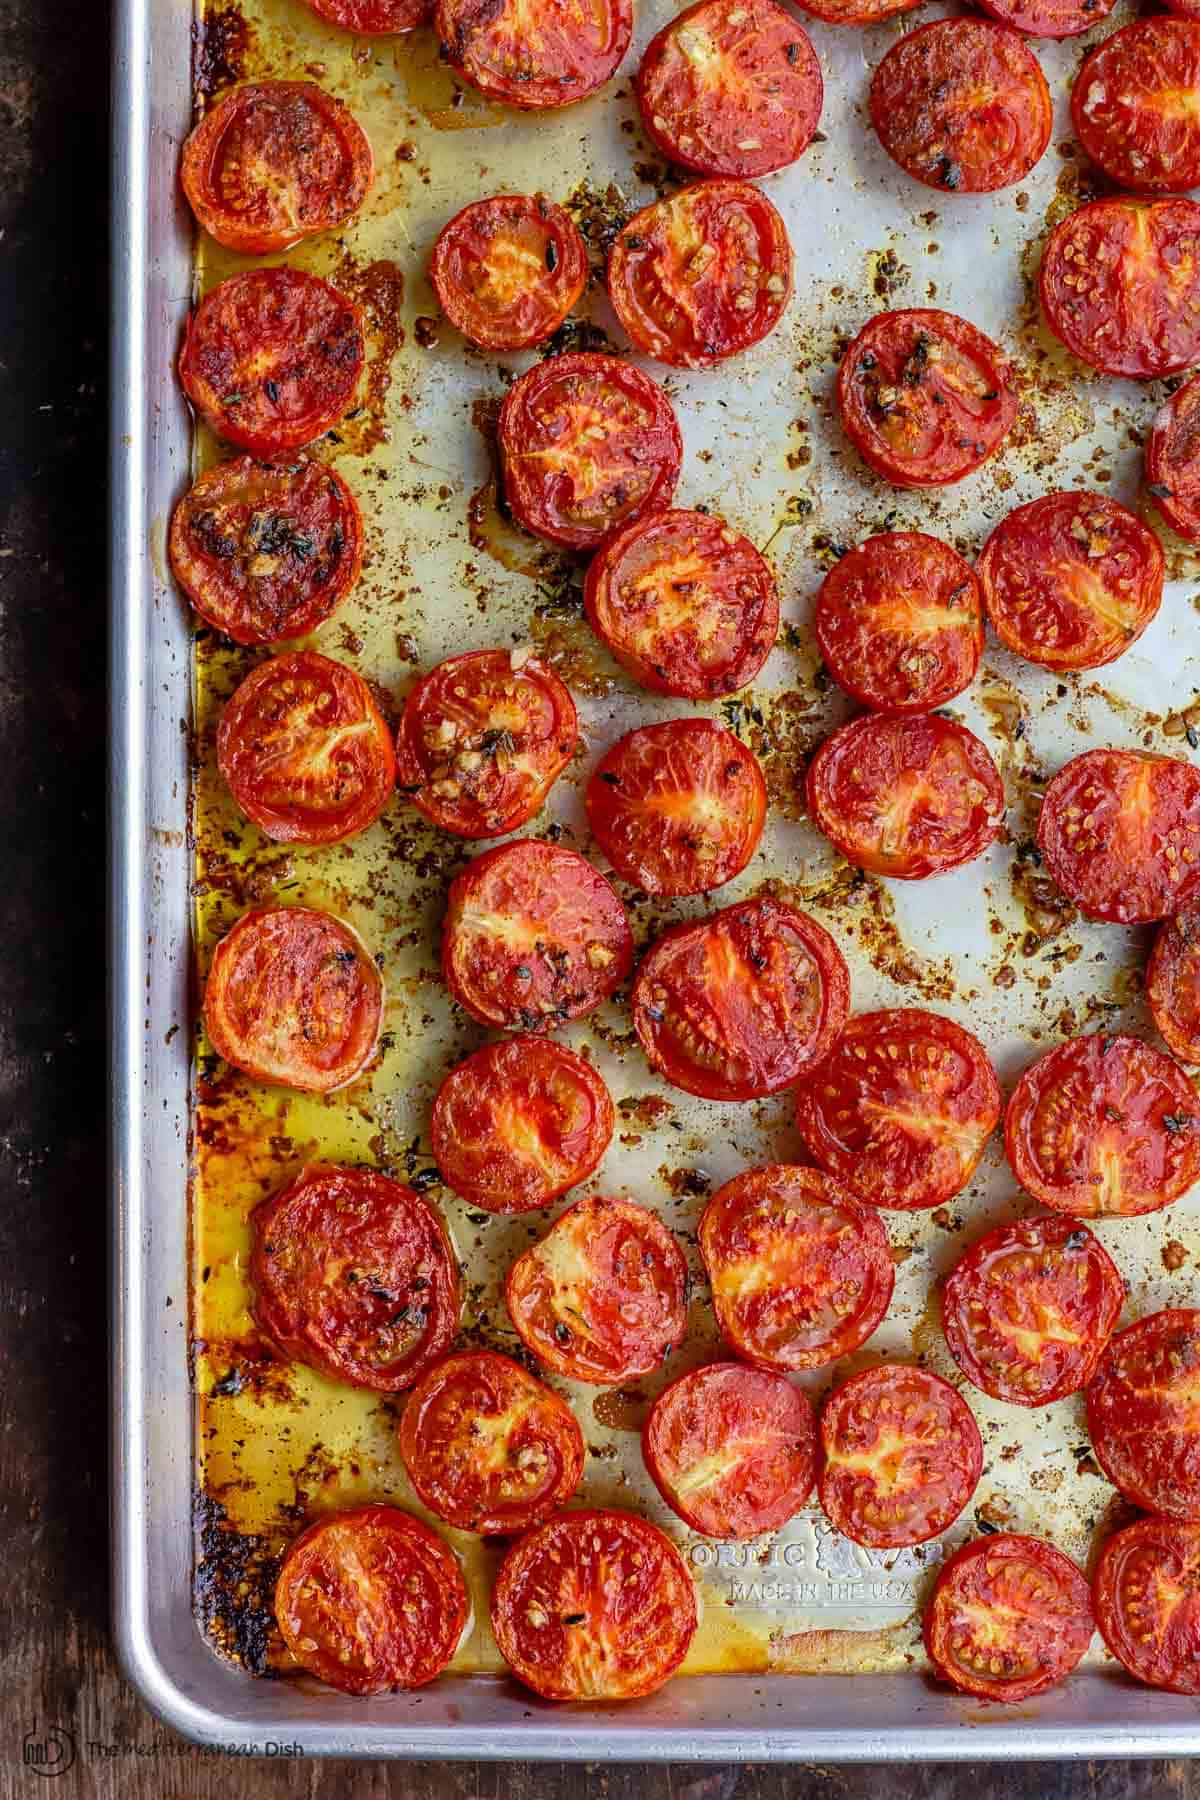 Oven roasted tomatoes on pan